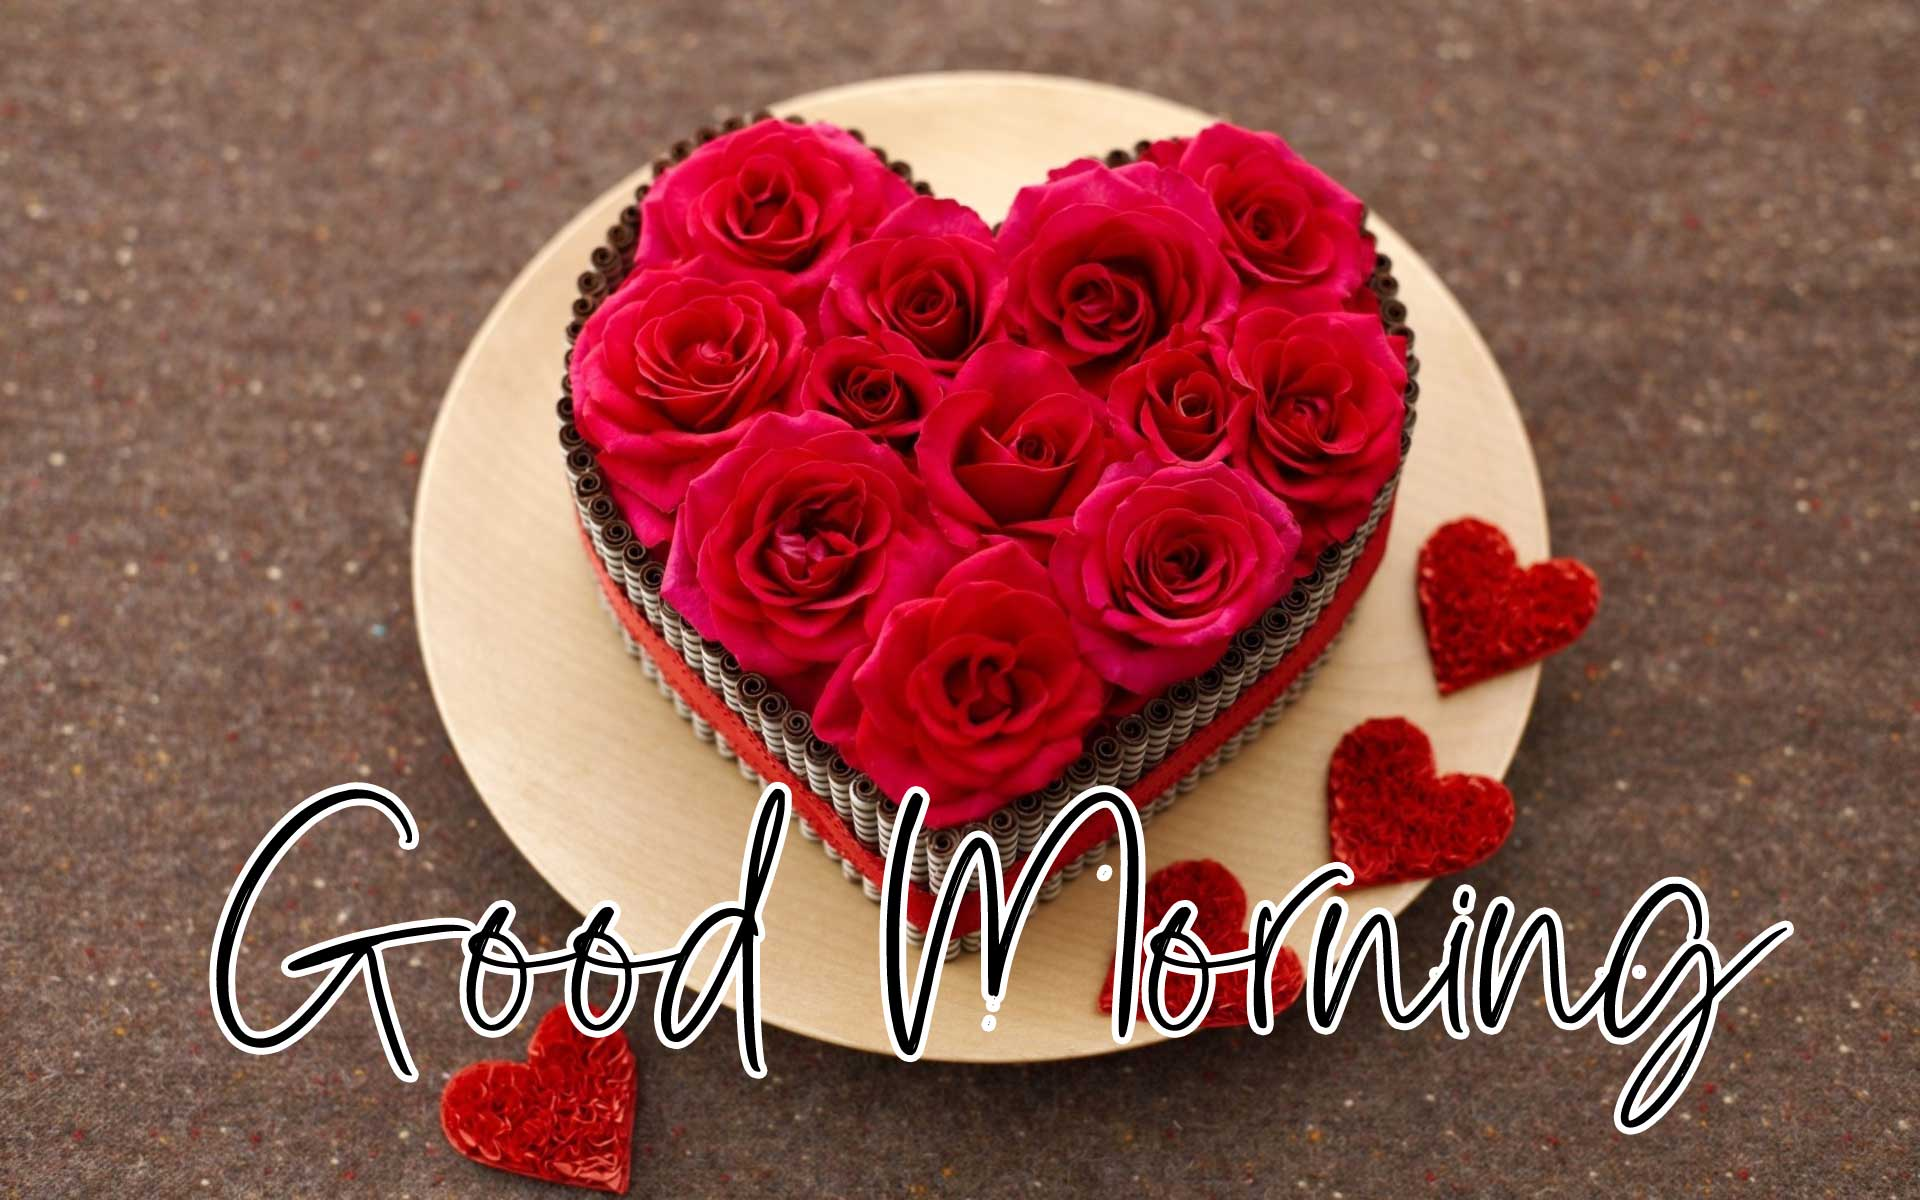 Beautiful Red Rose Good Morning Pics Wallpaper for Love Couple